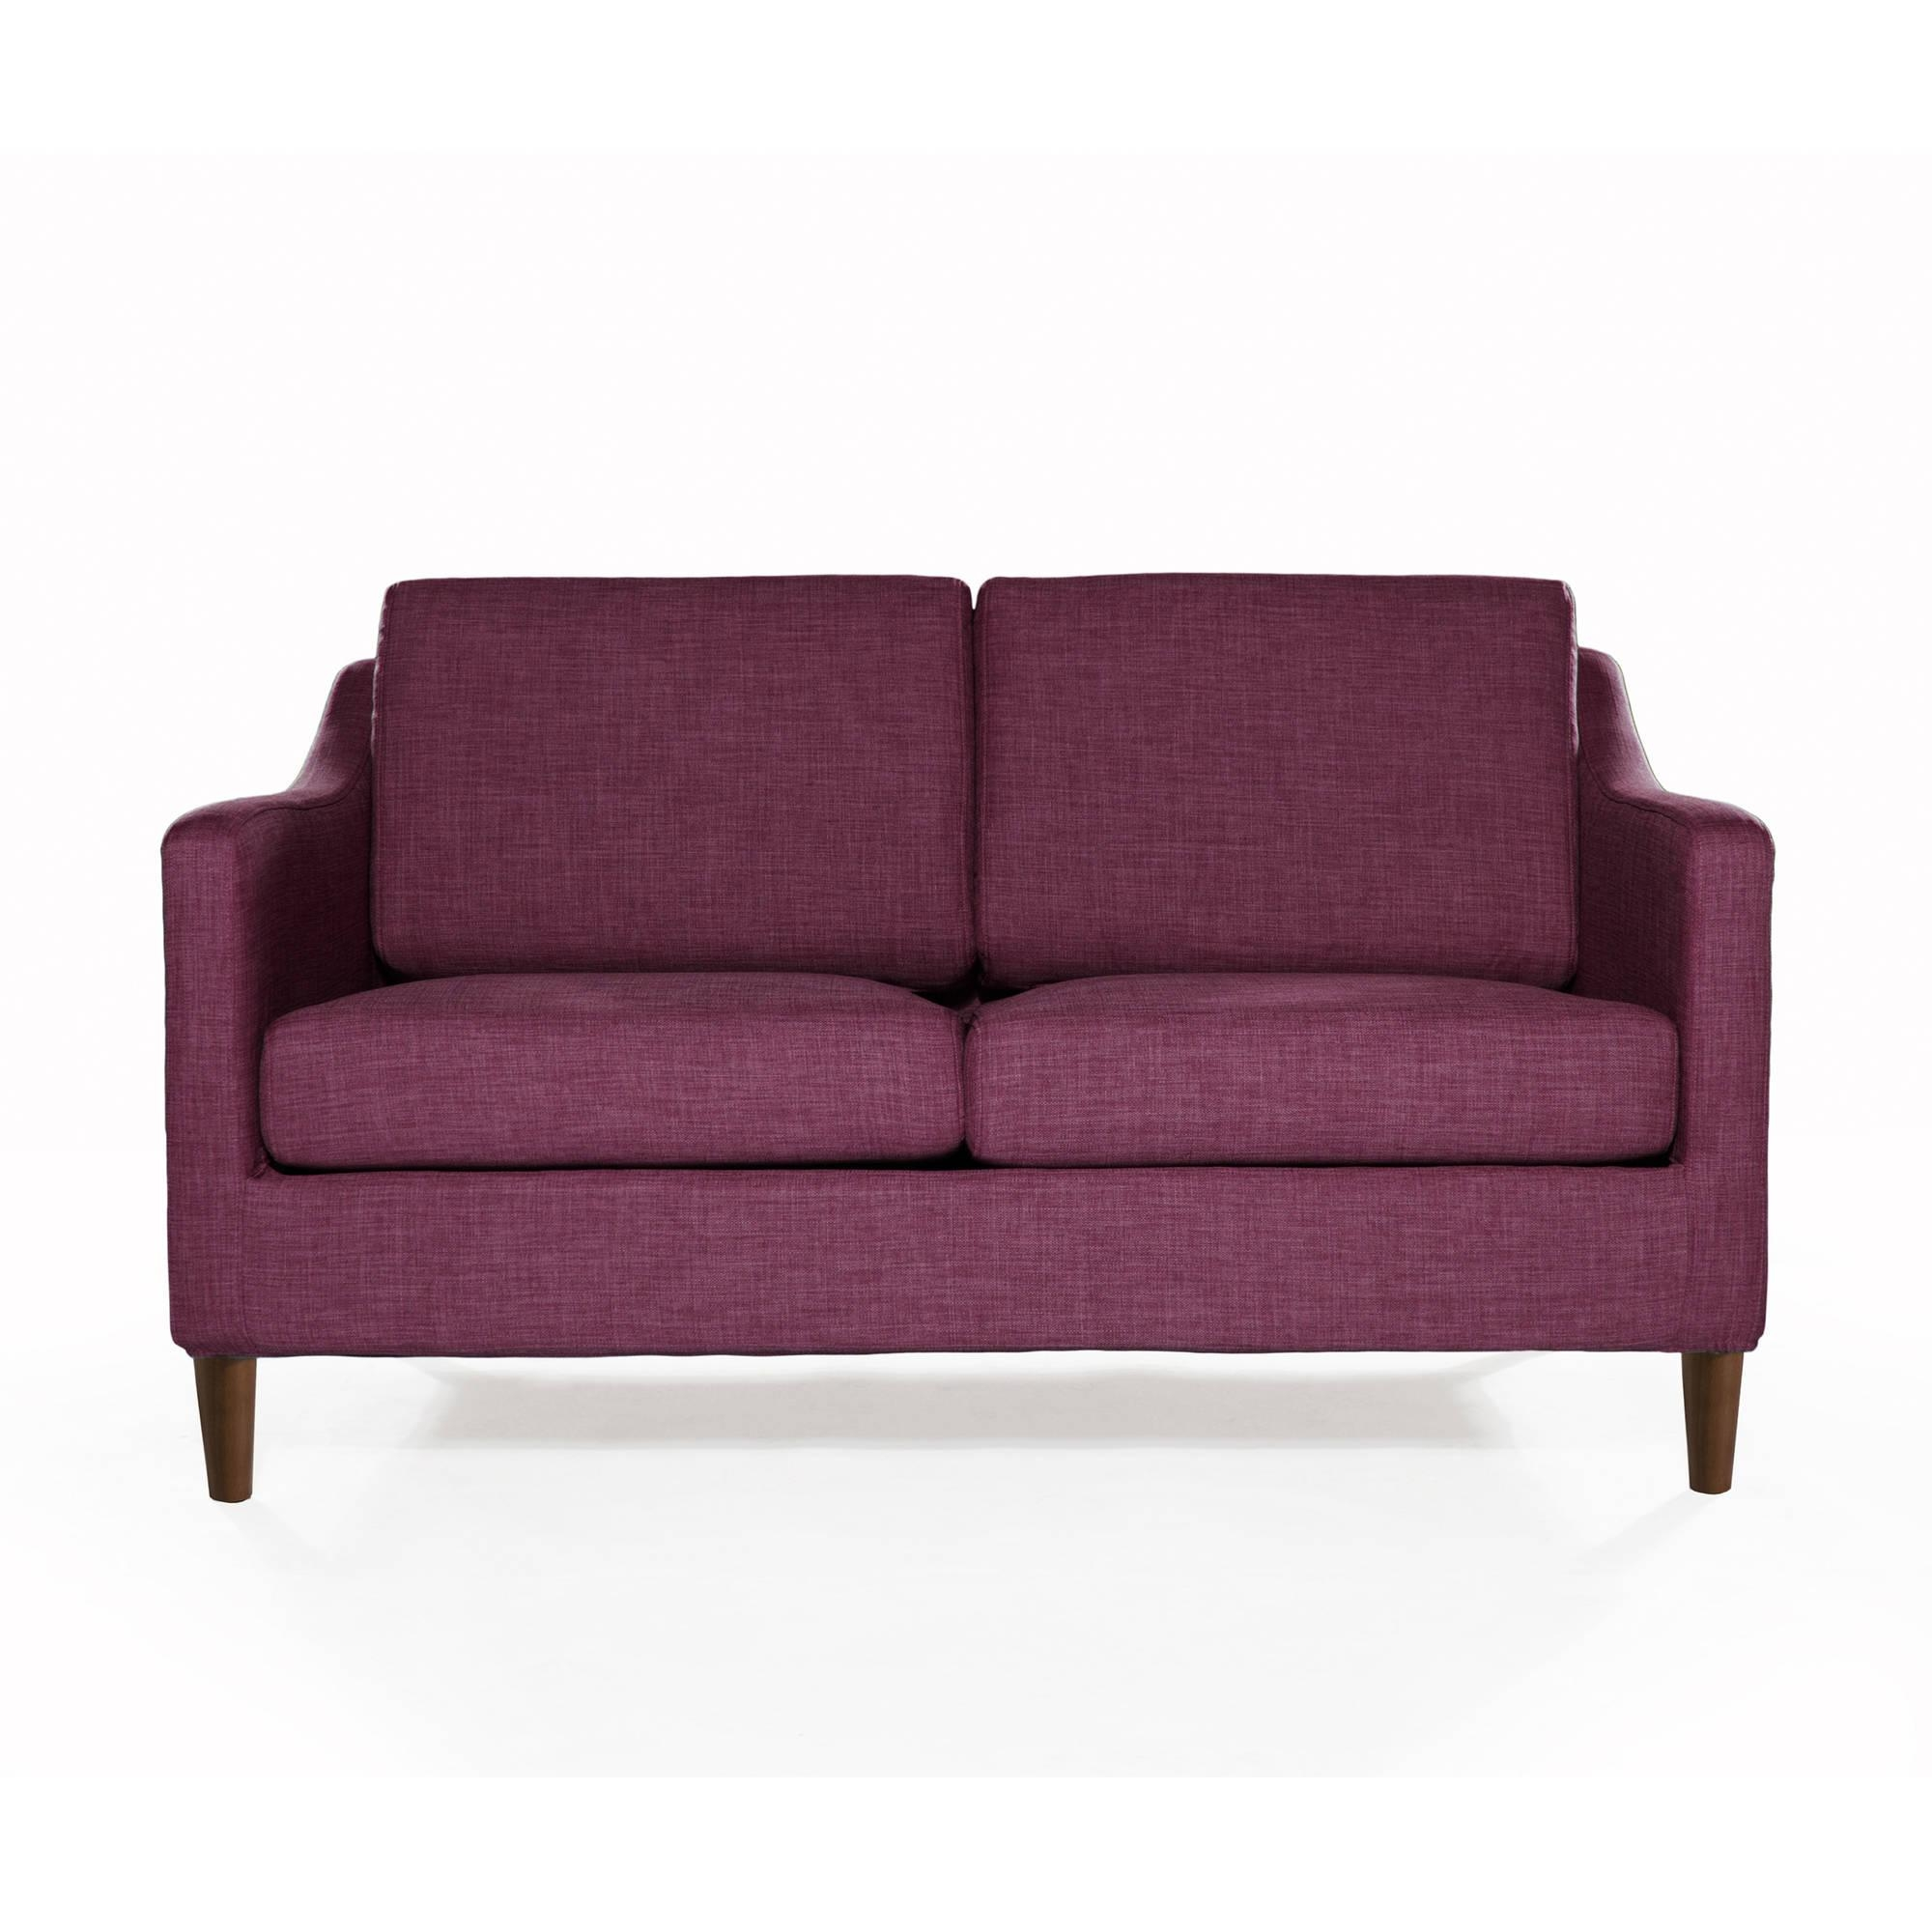 Sectional Sofas And Sectional Couches – Walmart Throughout Sectinal Sofas (Image 19 of 20)